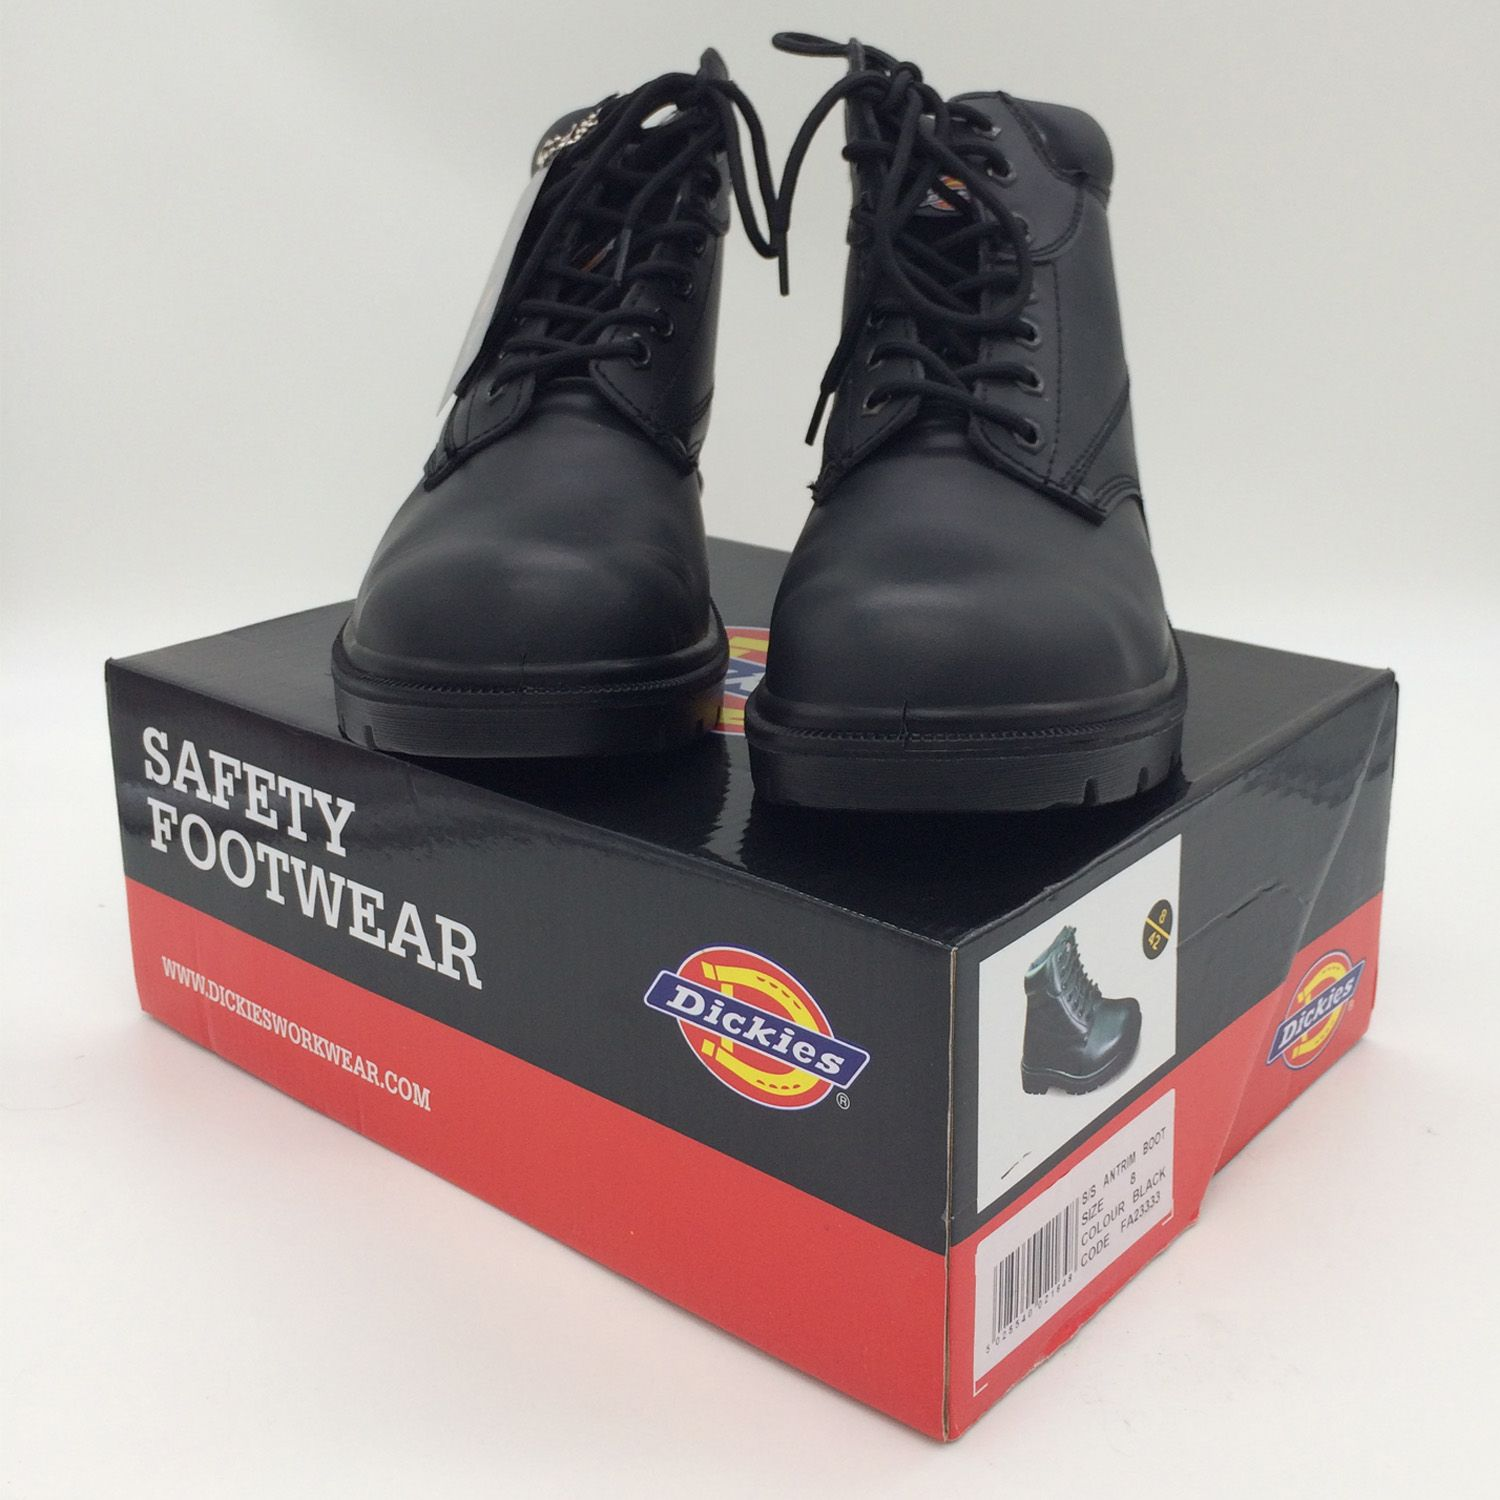 DICKIES Arbeitsschuhe | Antrim Super Safety Boot